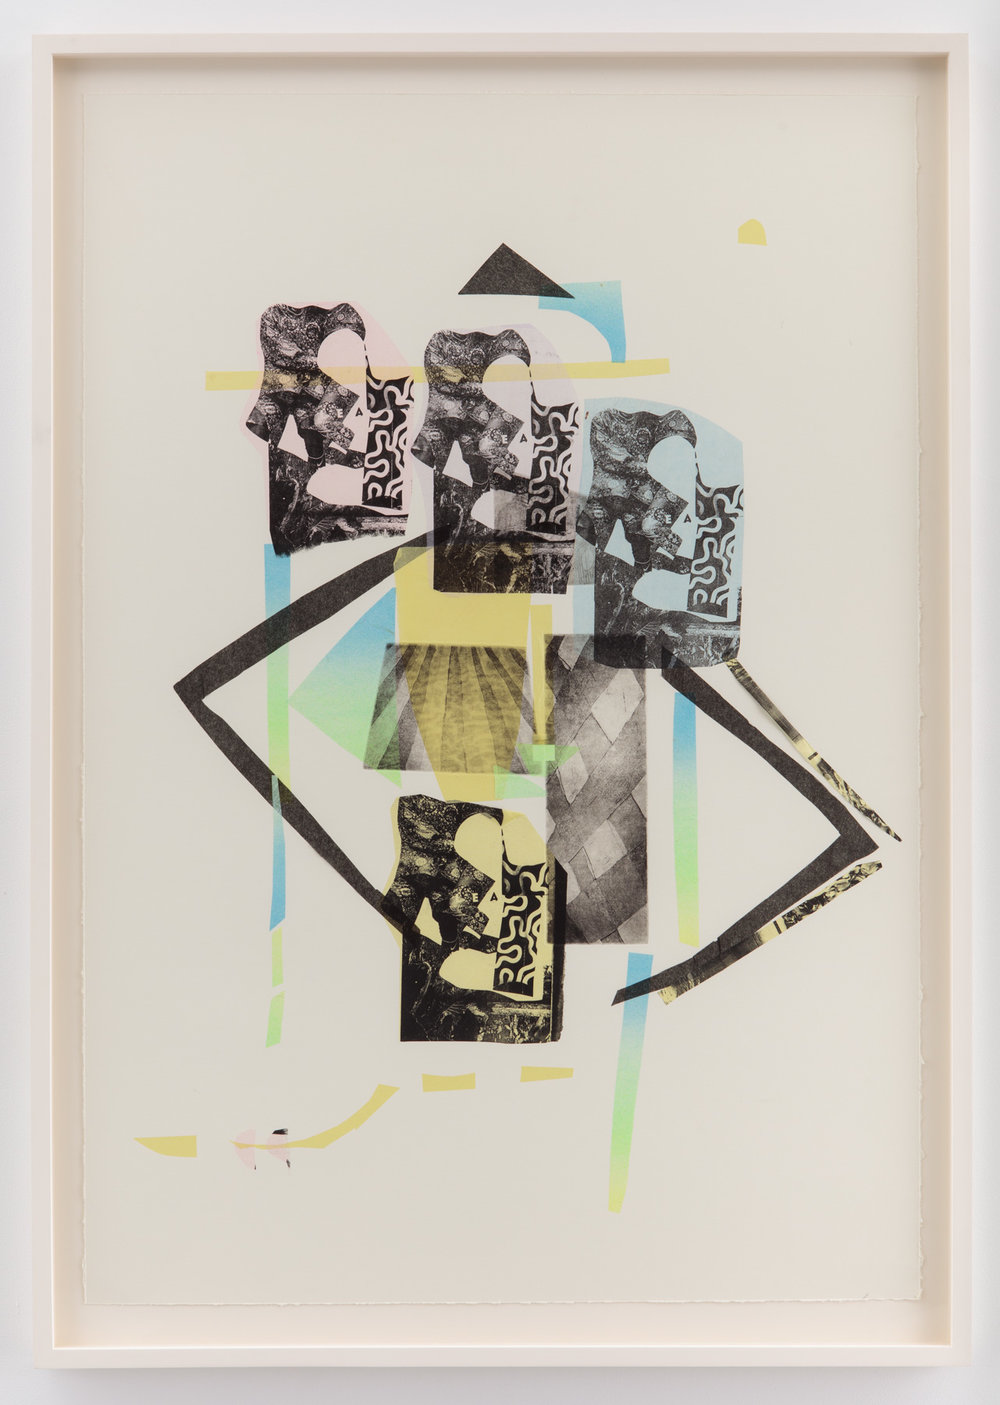 Players   Pronto plate, intaglio, chine collé print on Hahnemühle Copperplate paper  51 inches x 36 inches  2016